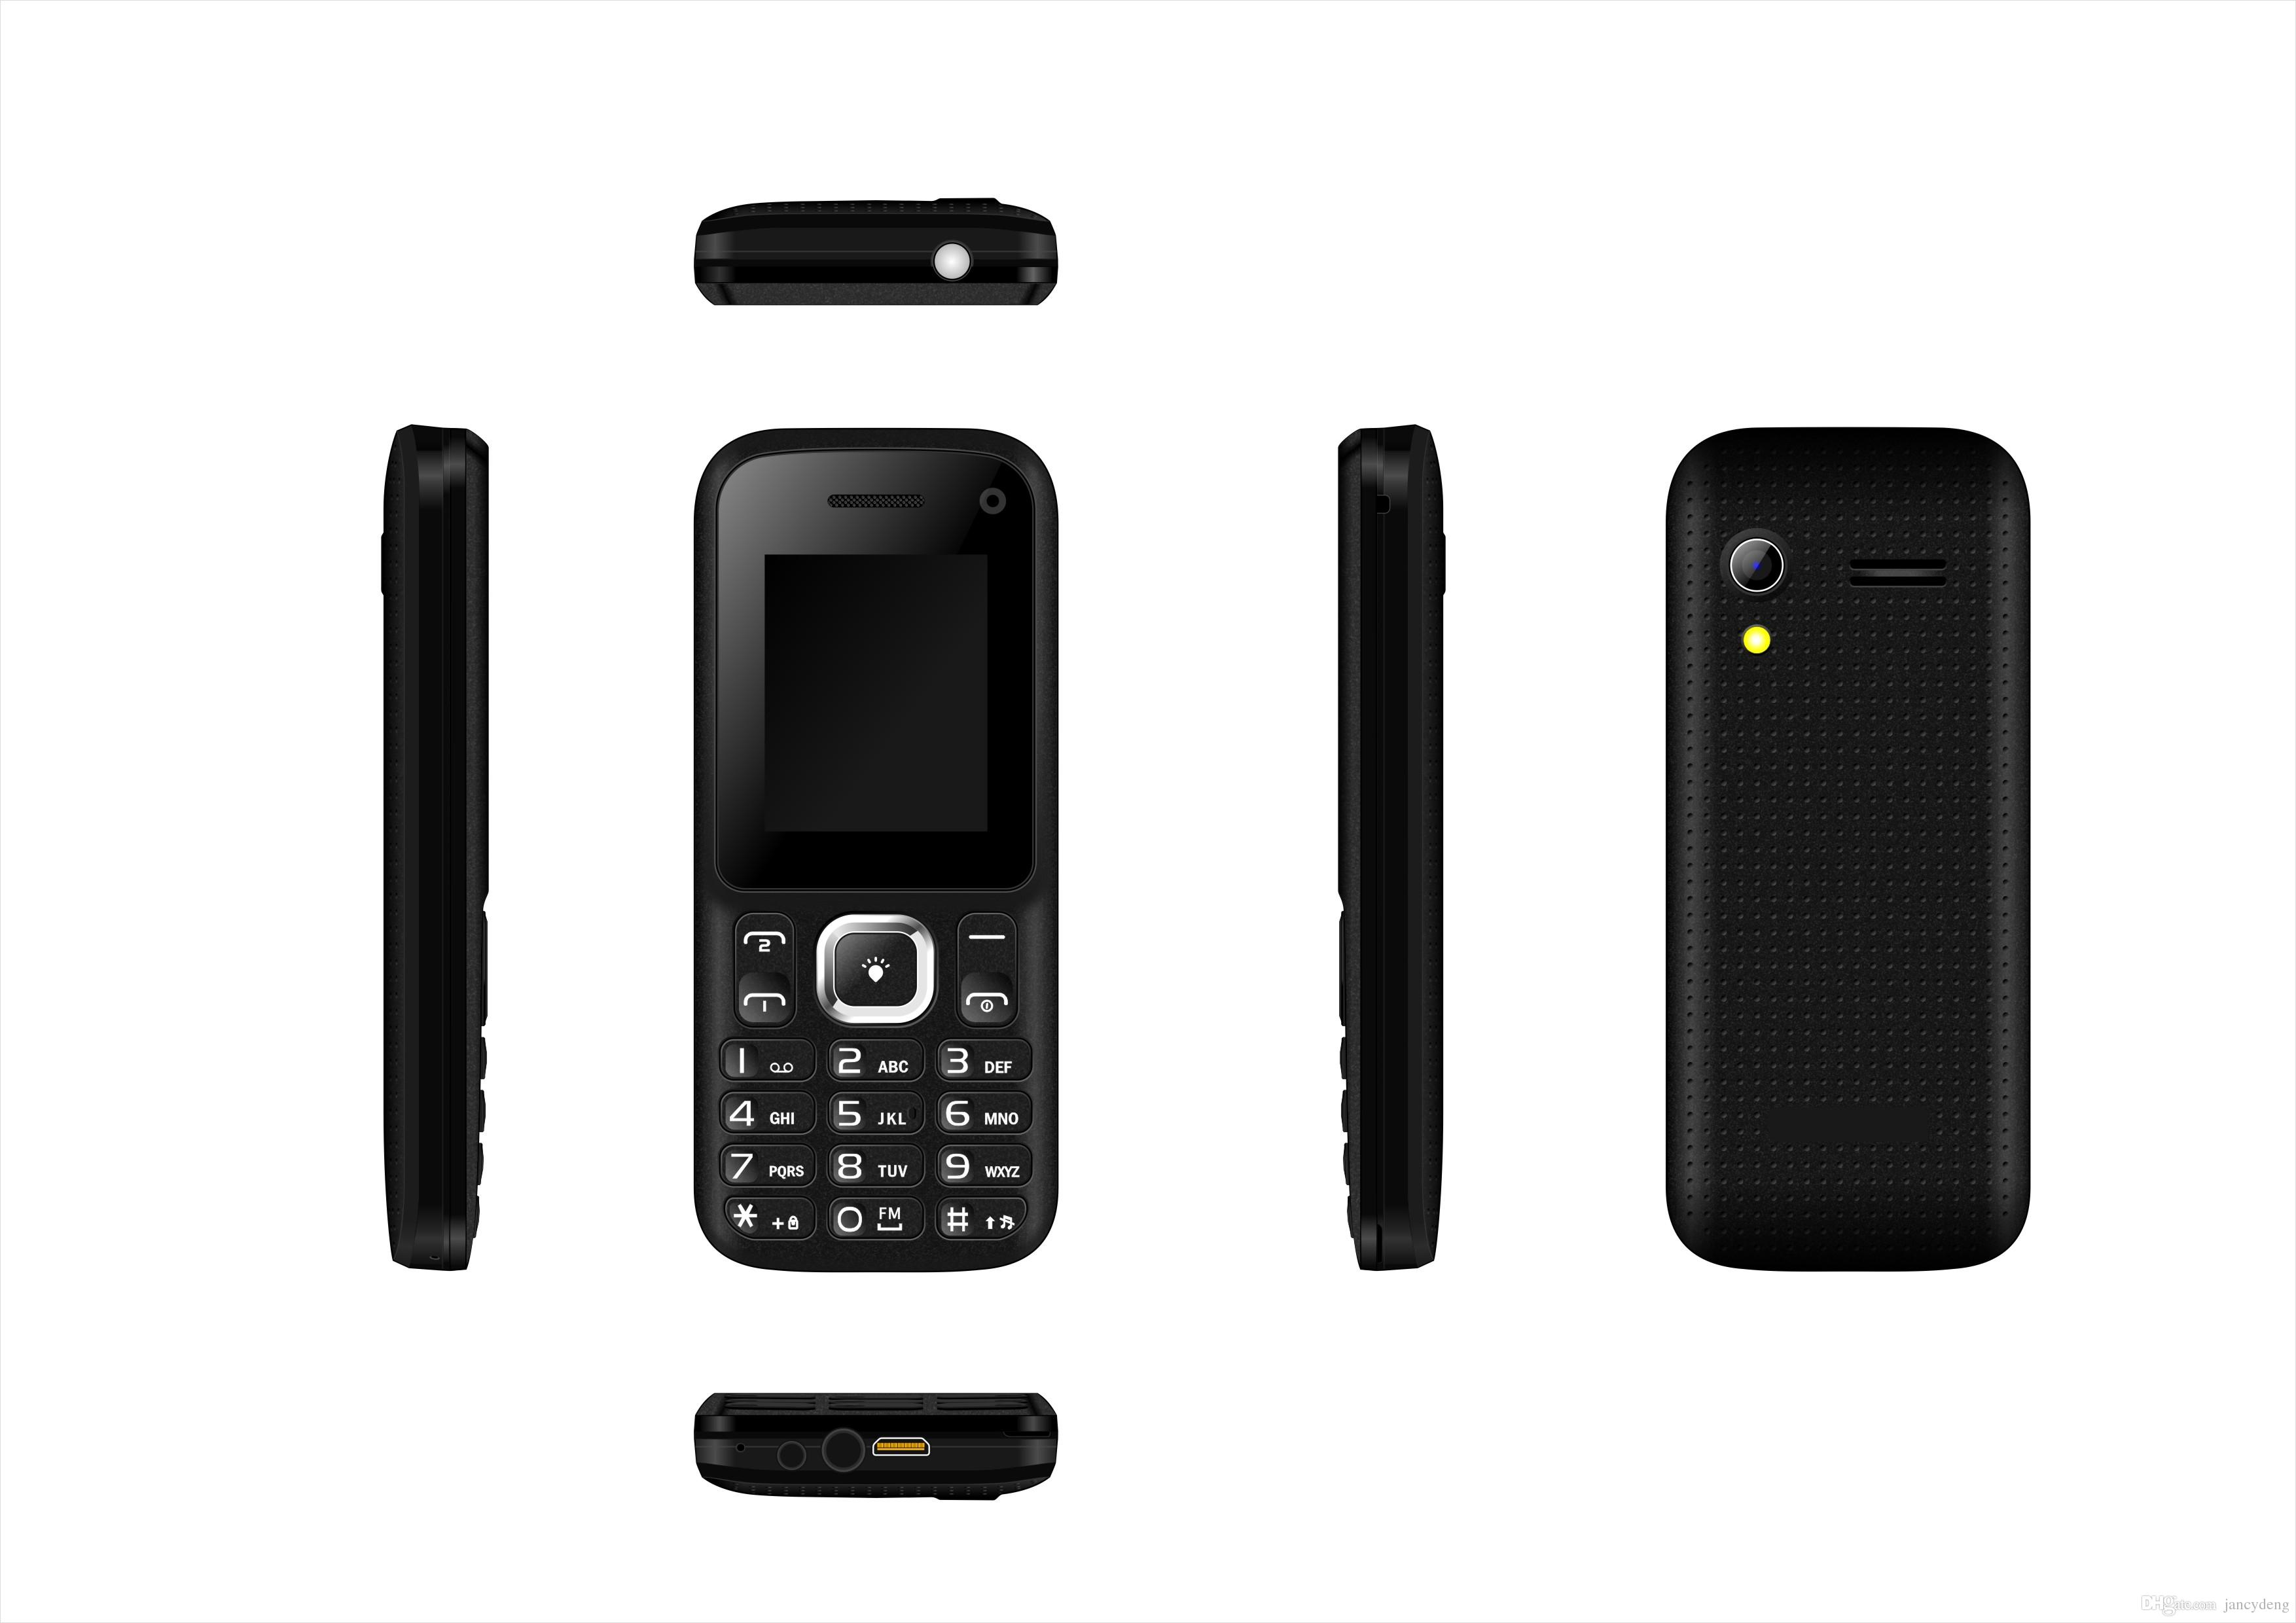 Camera Latest Low Price Android Phones 1 8 inch spreadtrum 6531d 2g feature phone 3232mb dual sim external 32gb 0 08mp